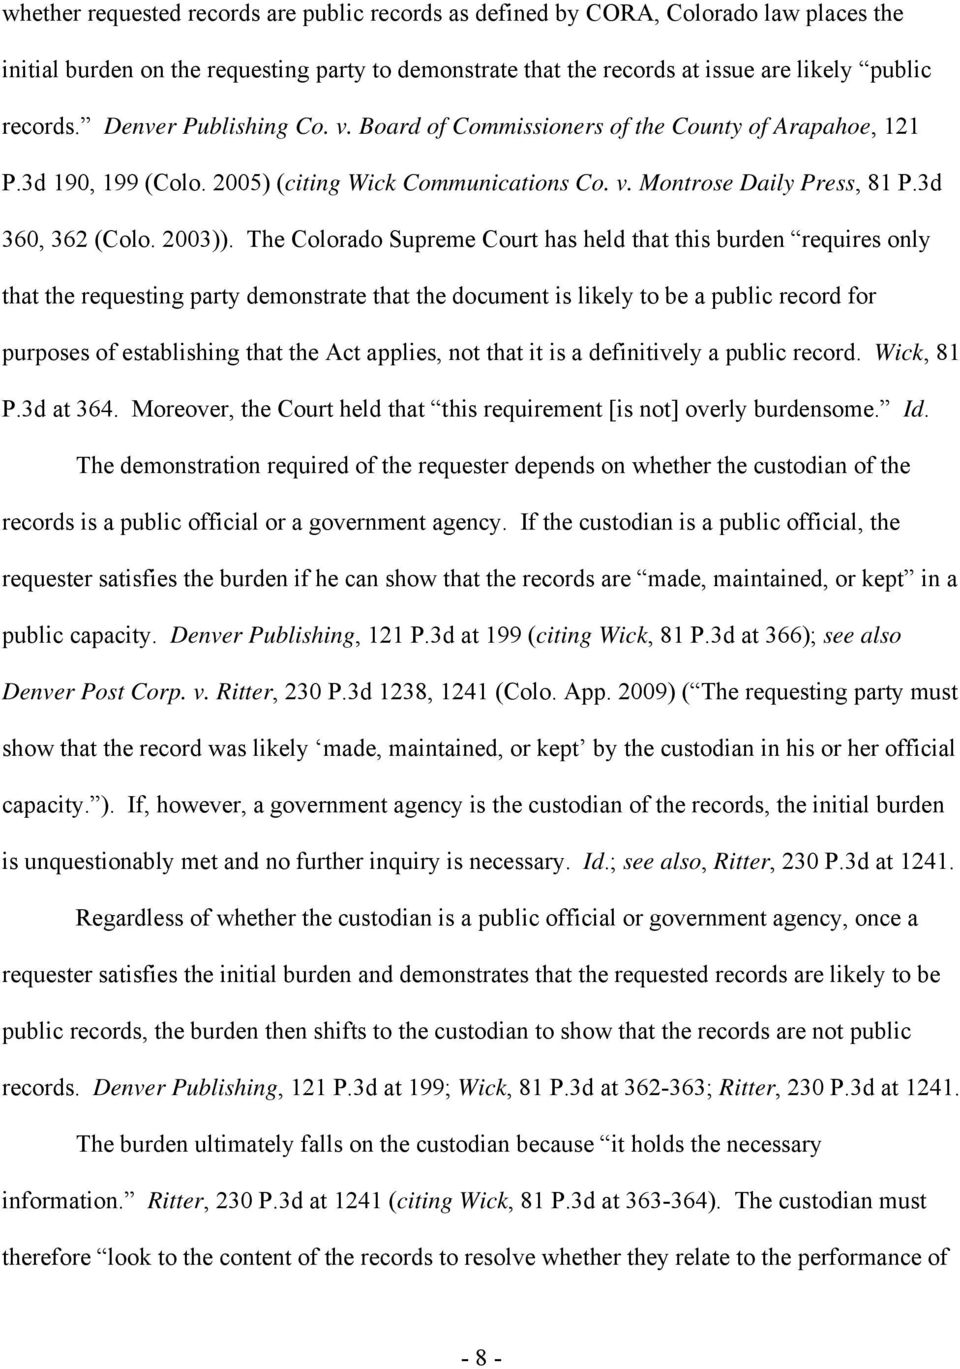 The Colorado Supreme Court has held that this burden requires only that the requesting party demonstrate that the document is likely to be a public record for purposes of establishing that the Act